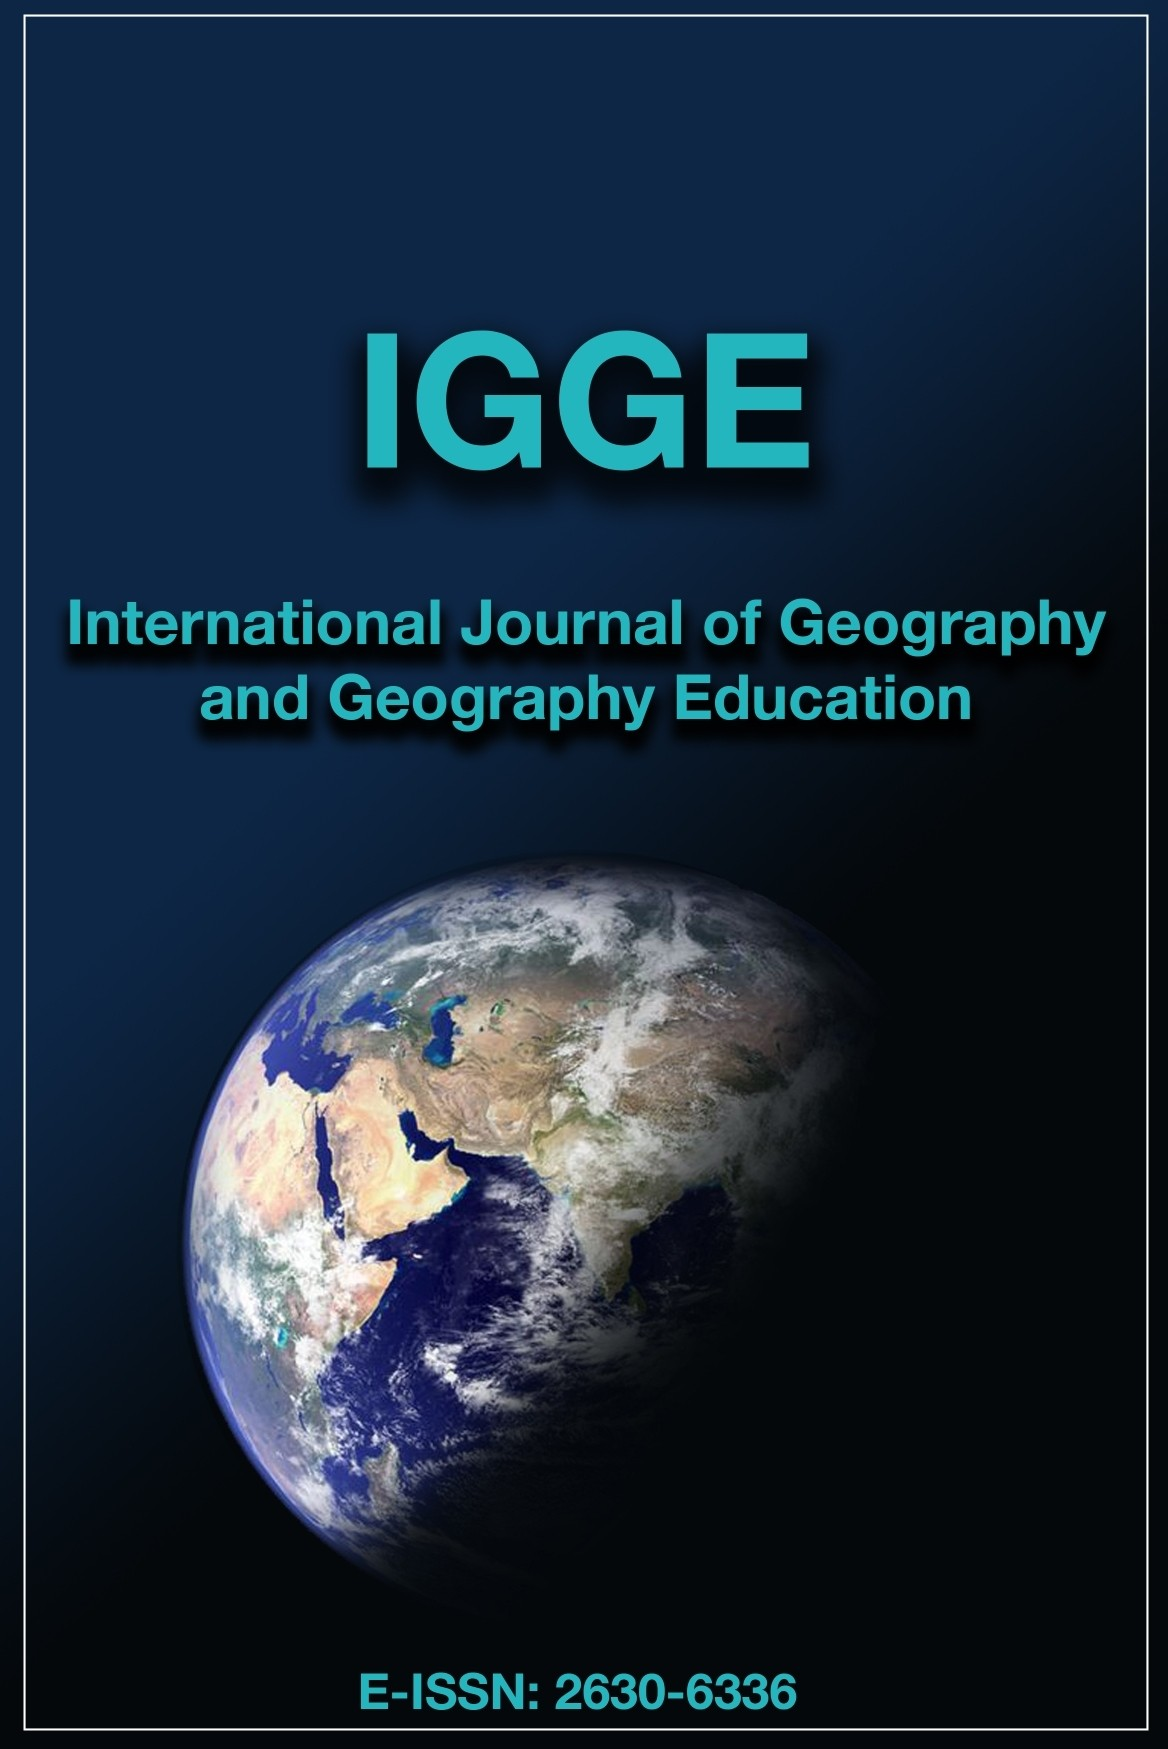 lnternational Journal of Geography and Geography Education